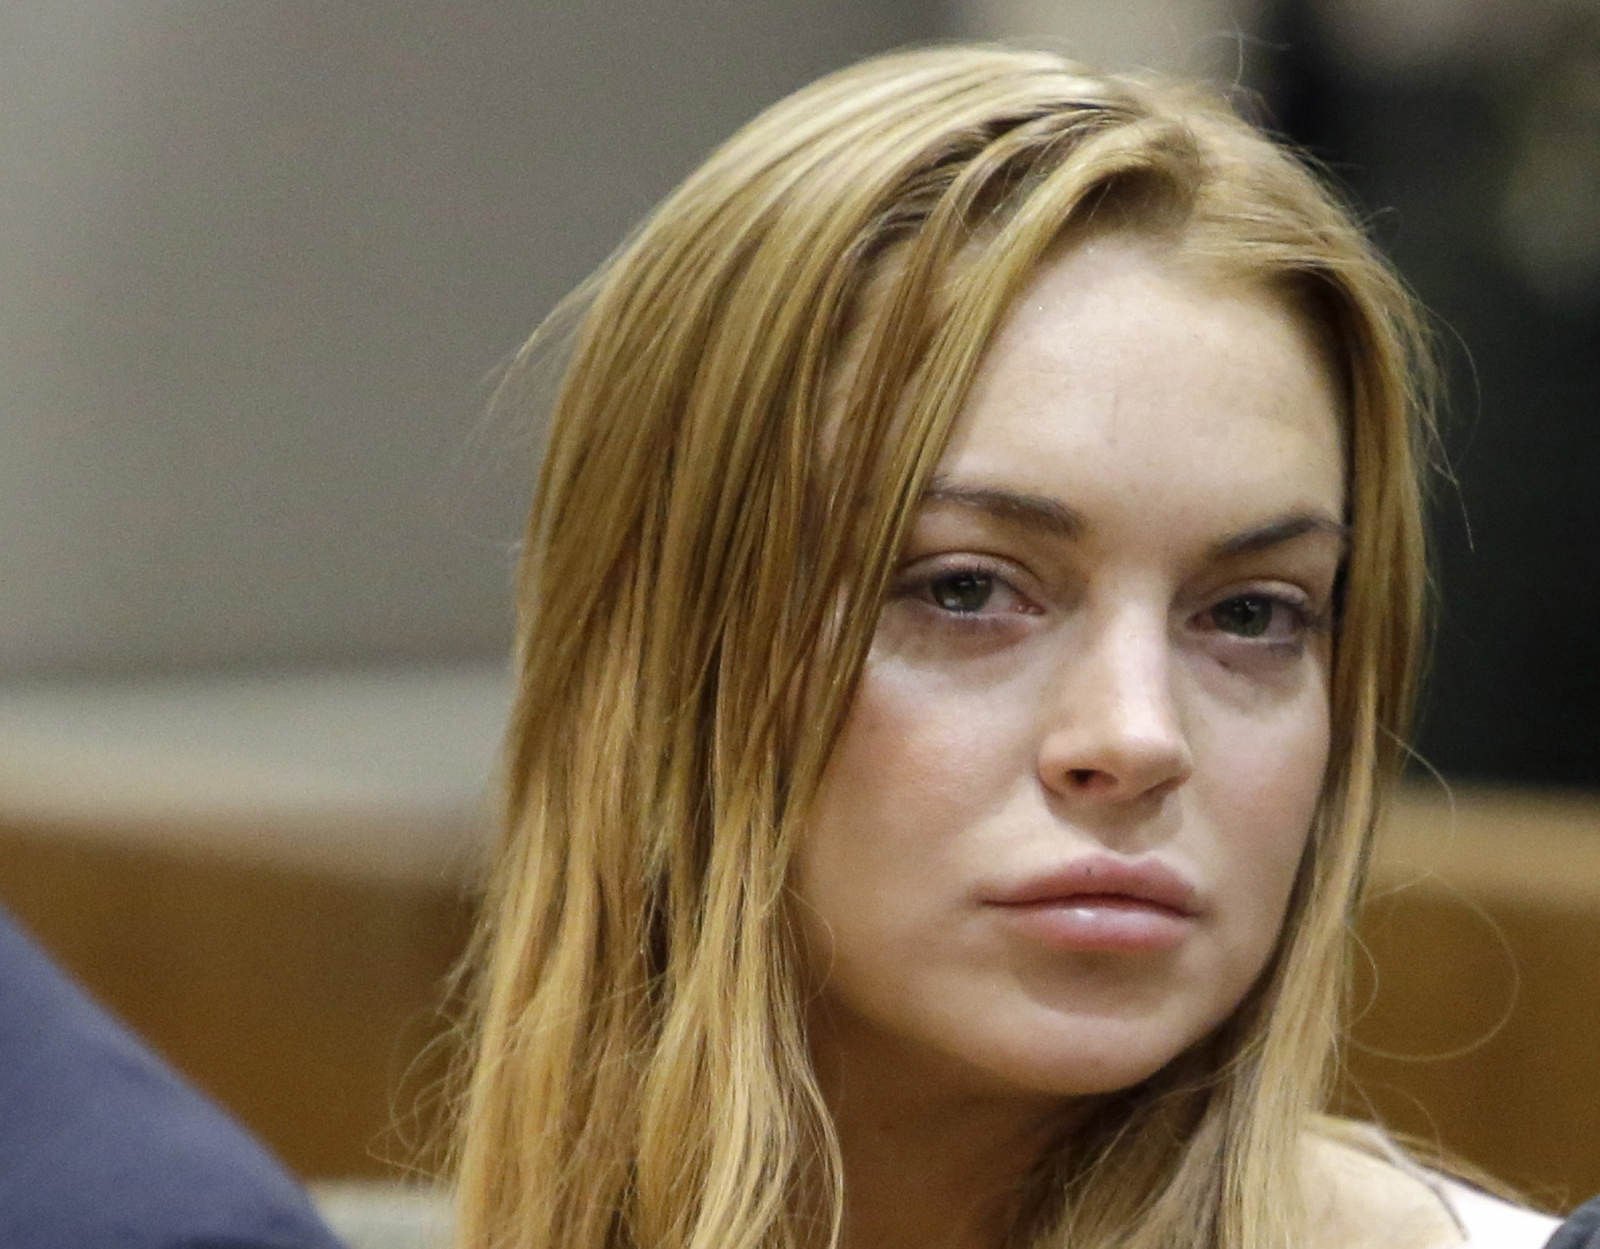 Lindsay Lohan has been ordered to re-do her community service